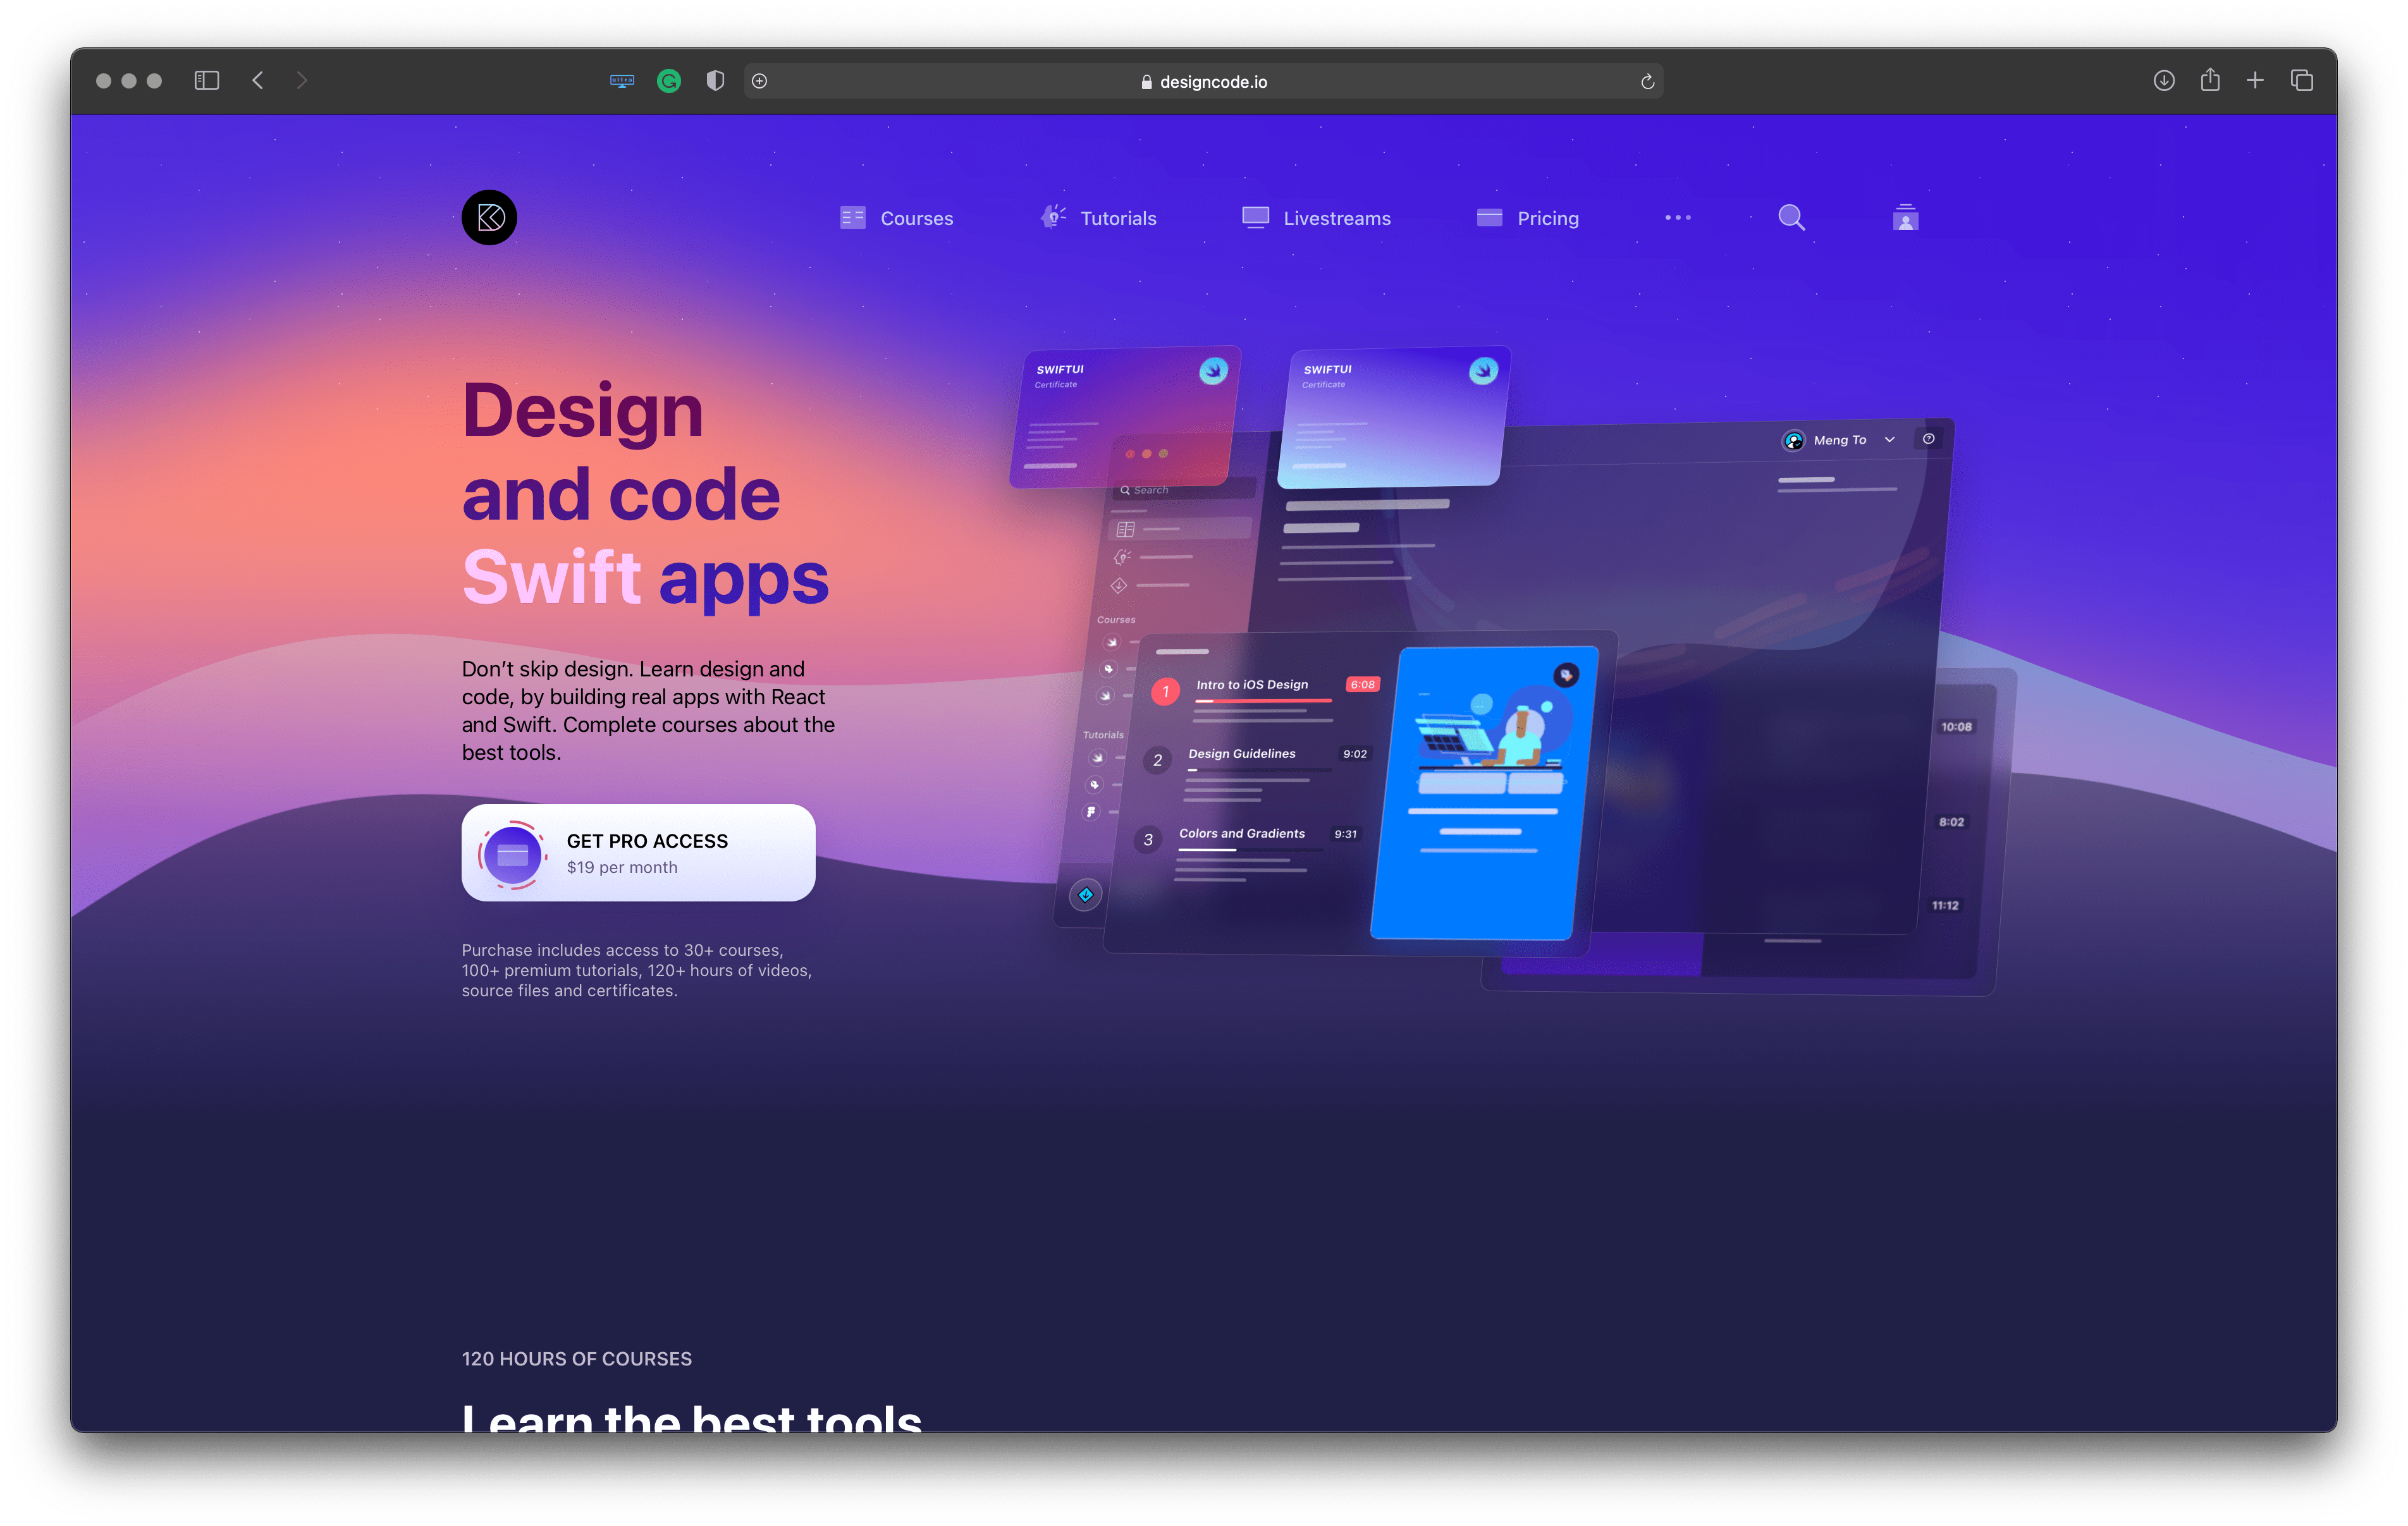 Best tools for iOS developers: Design+Code – UI design related content and courses